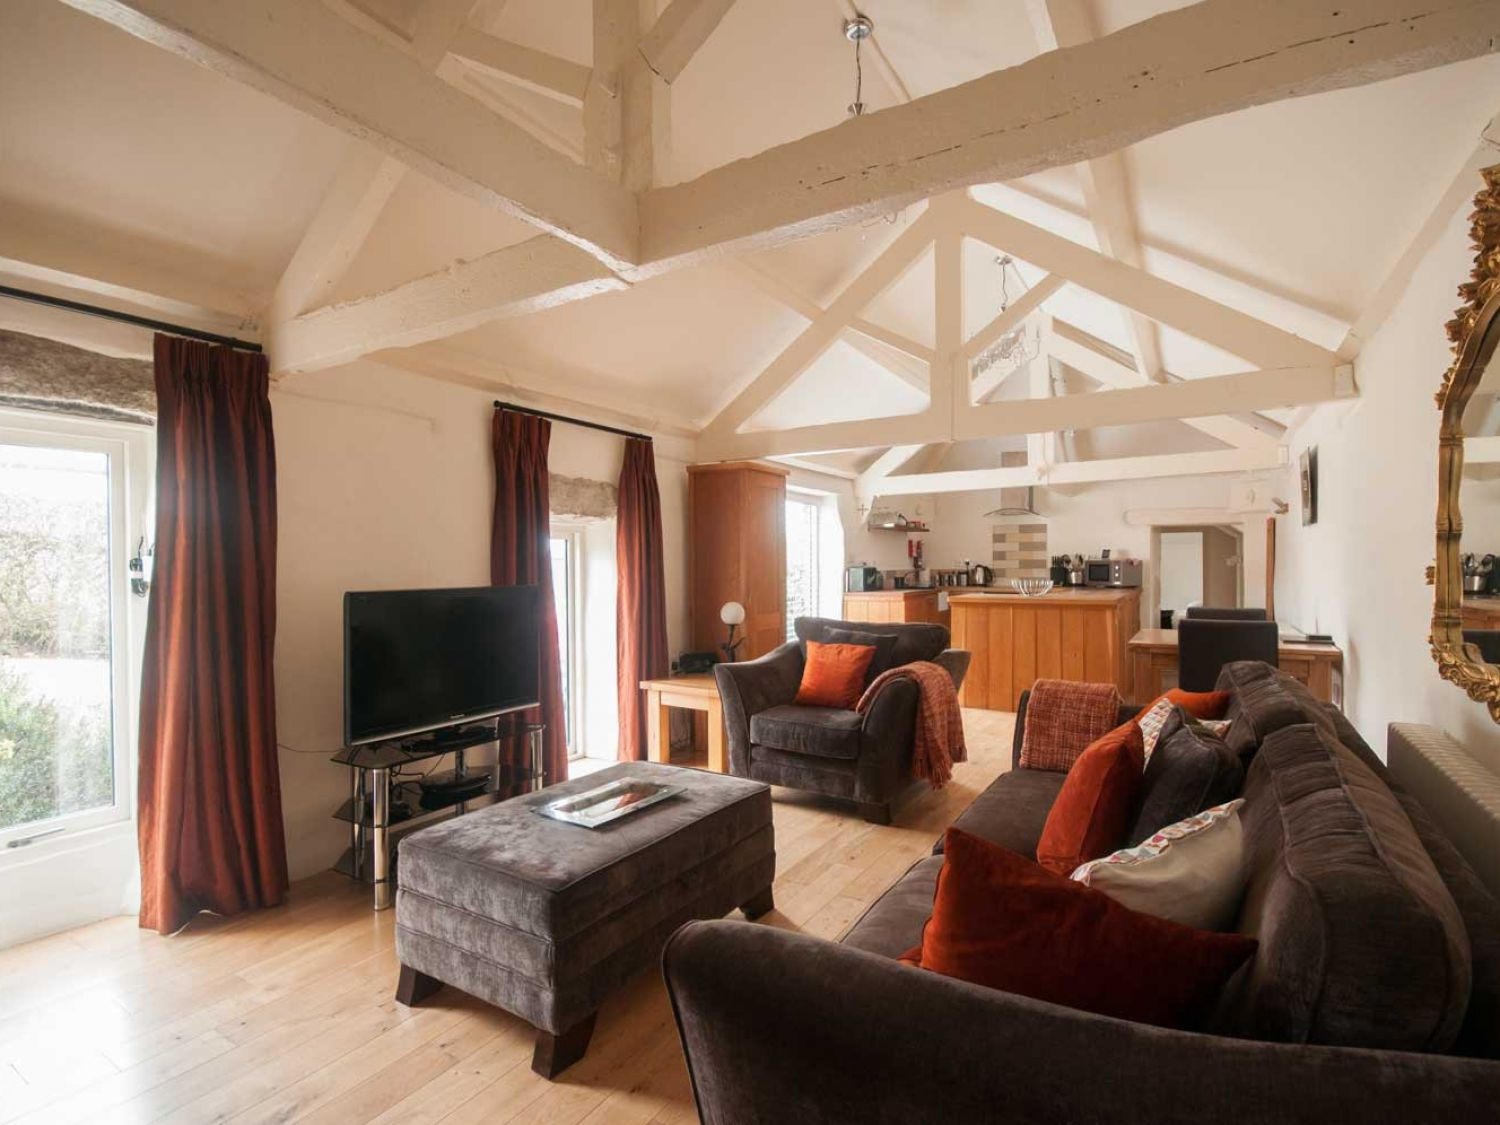 Lavender Barn in Crantock - sleeps 2 people